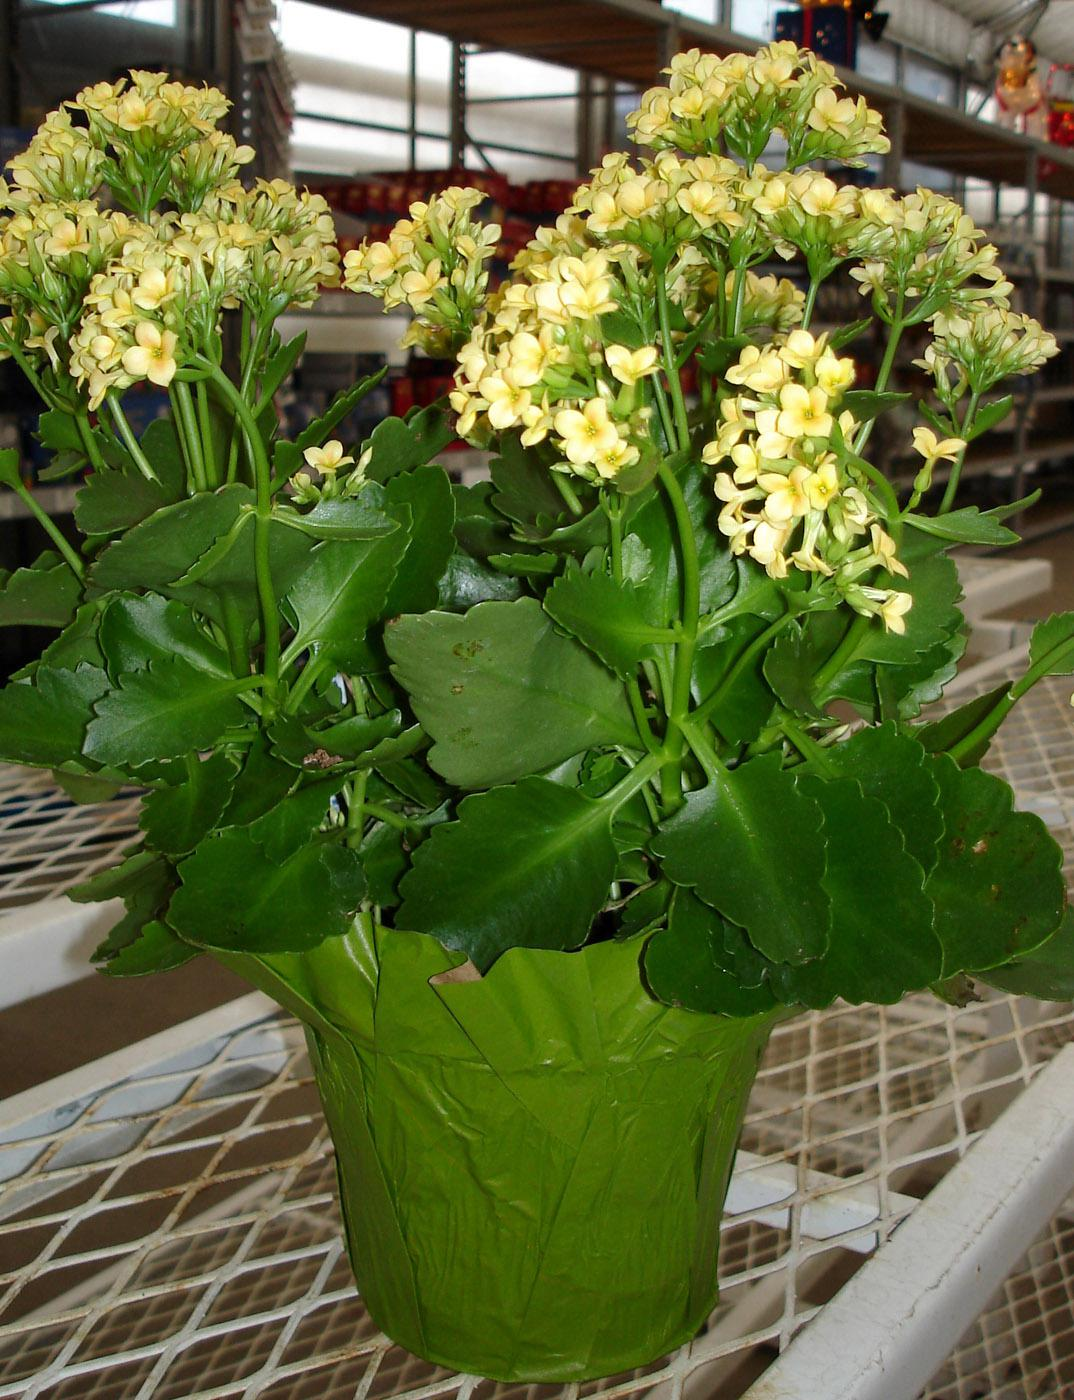 Small House Plants With Flowers Chase Away Winter Blues With Blooming Houseplants Mississippi